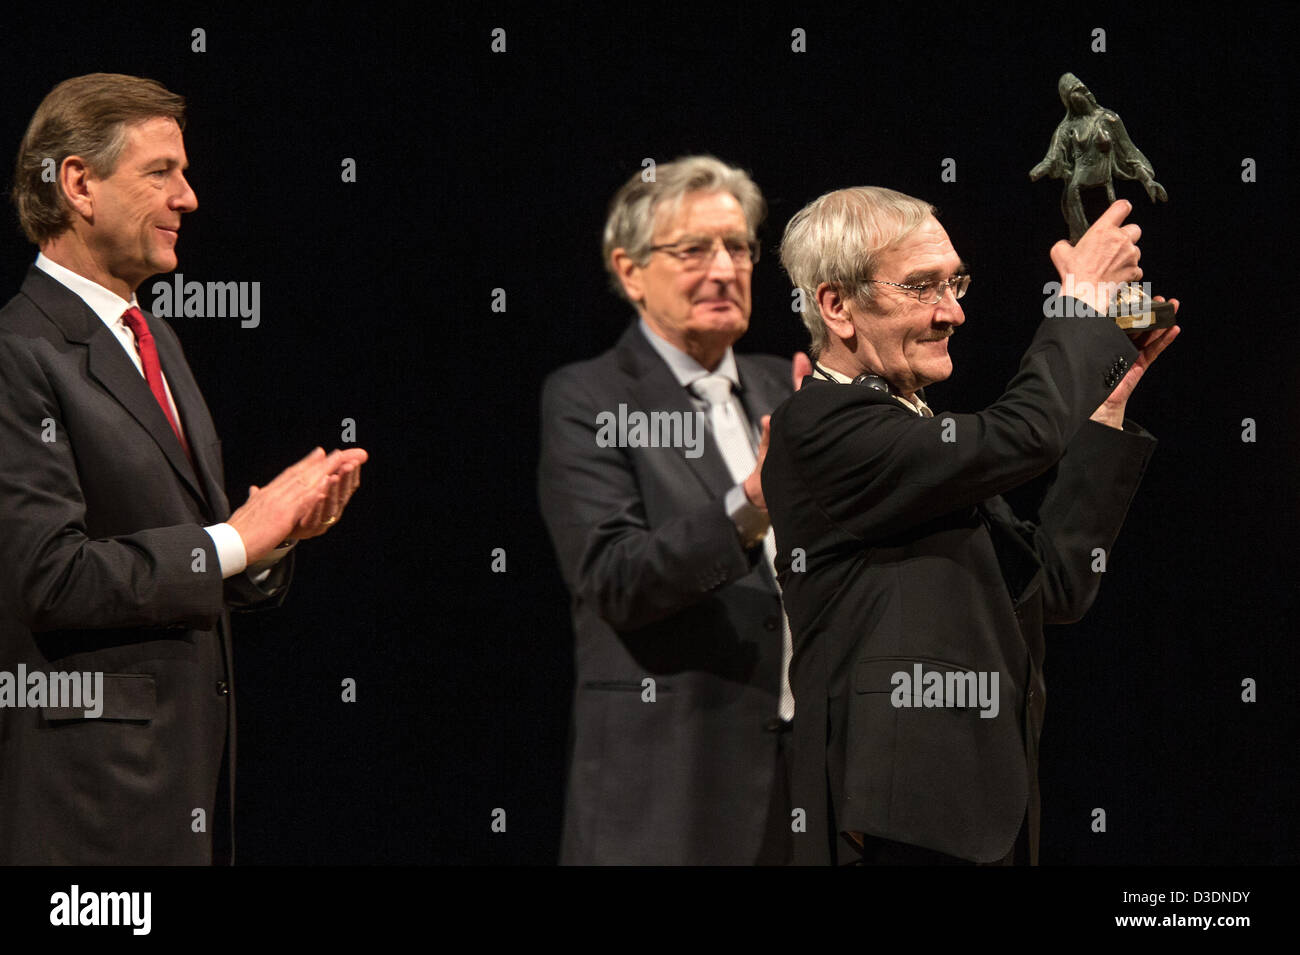 Former Soviet officer Stanislav Petrov holds the 'Dresden Prize' in front of ZDF journalist and laudatory - Stock Image